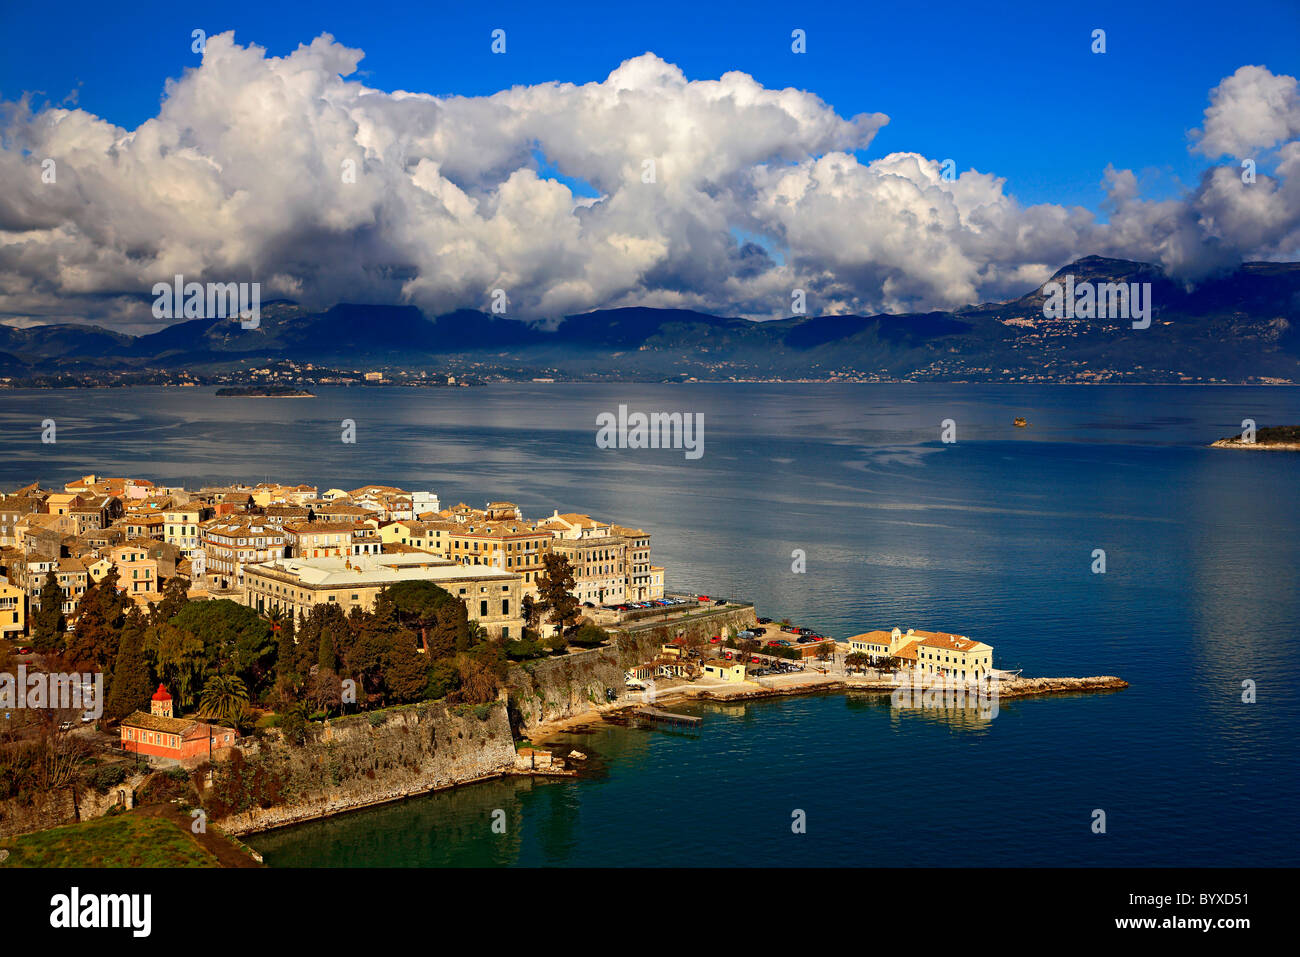 The oldest neighborhood (called 'Cambiello') of the old town of Corfu (or 'Kerkyra'), Ionian Sea, - Stock Image